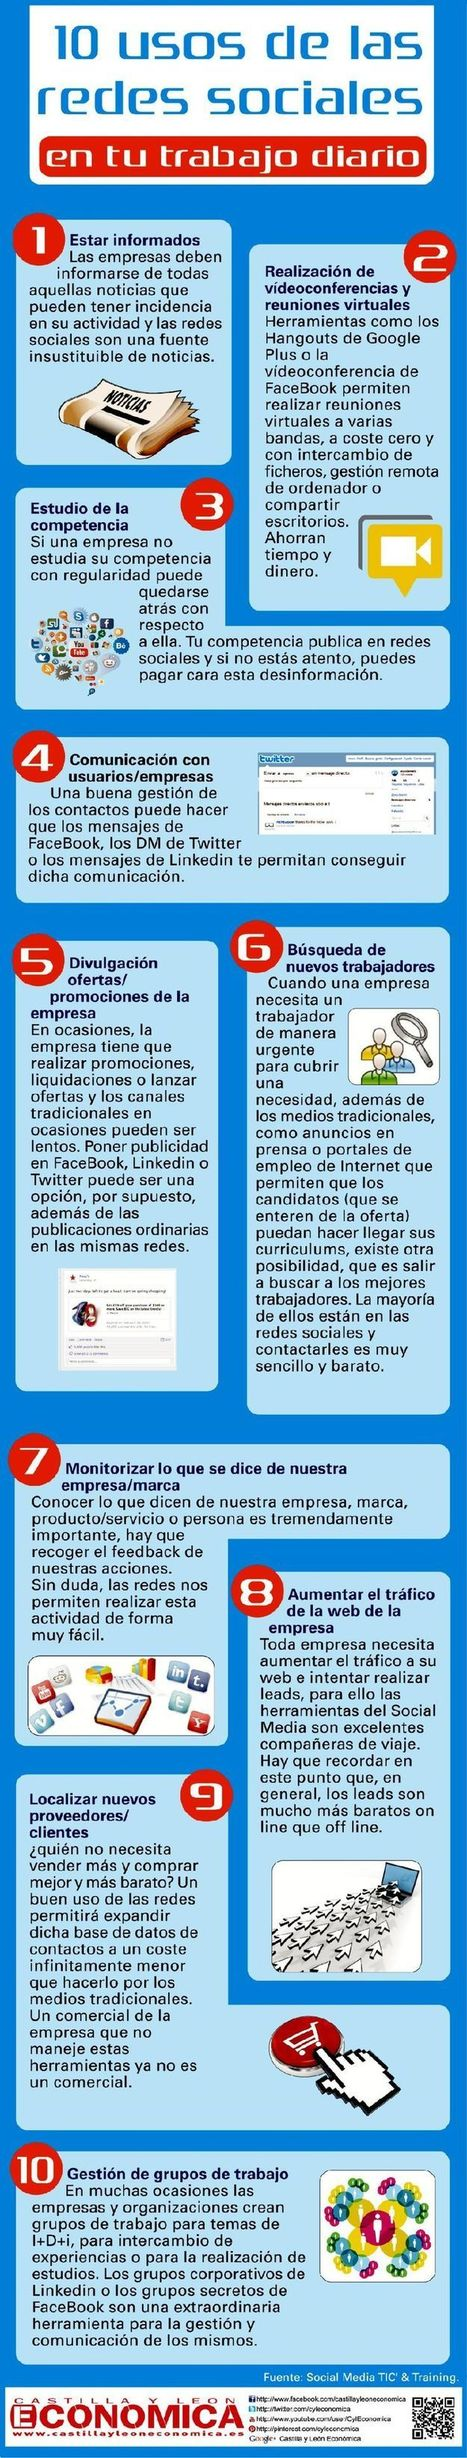 Redes Sociales | Social Media - Redes Sociales | Scoop.it